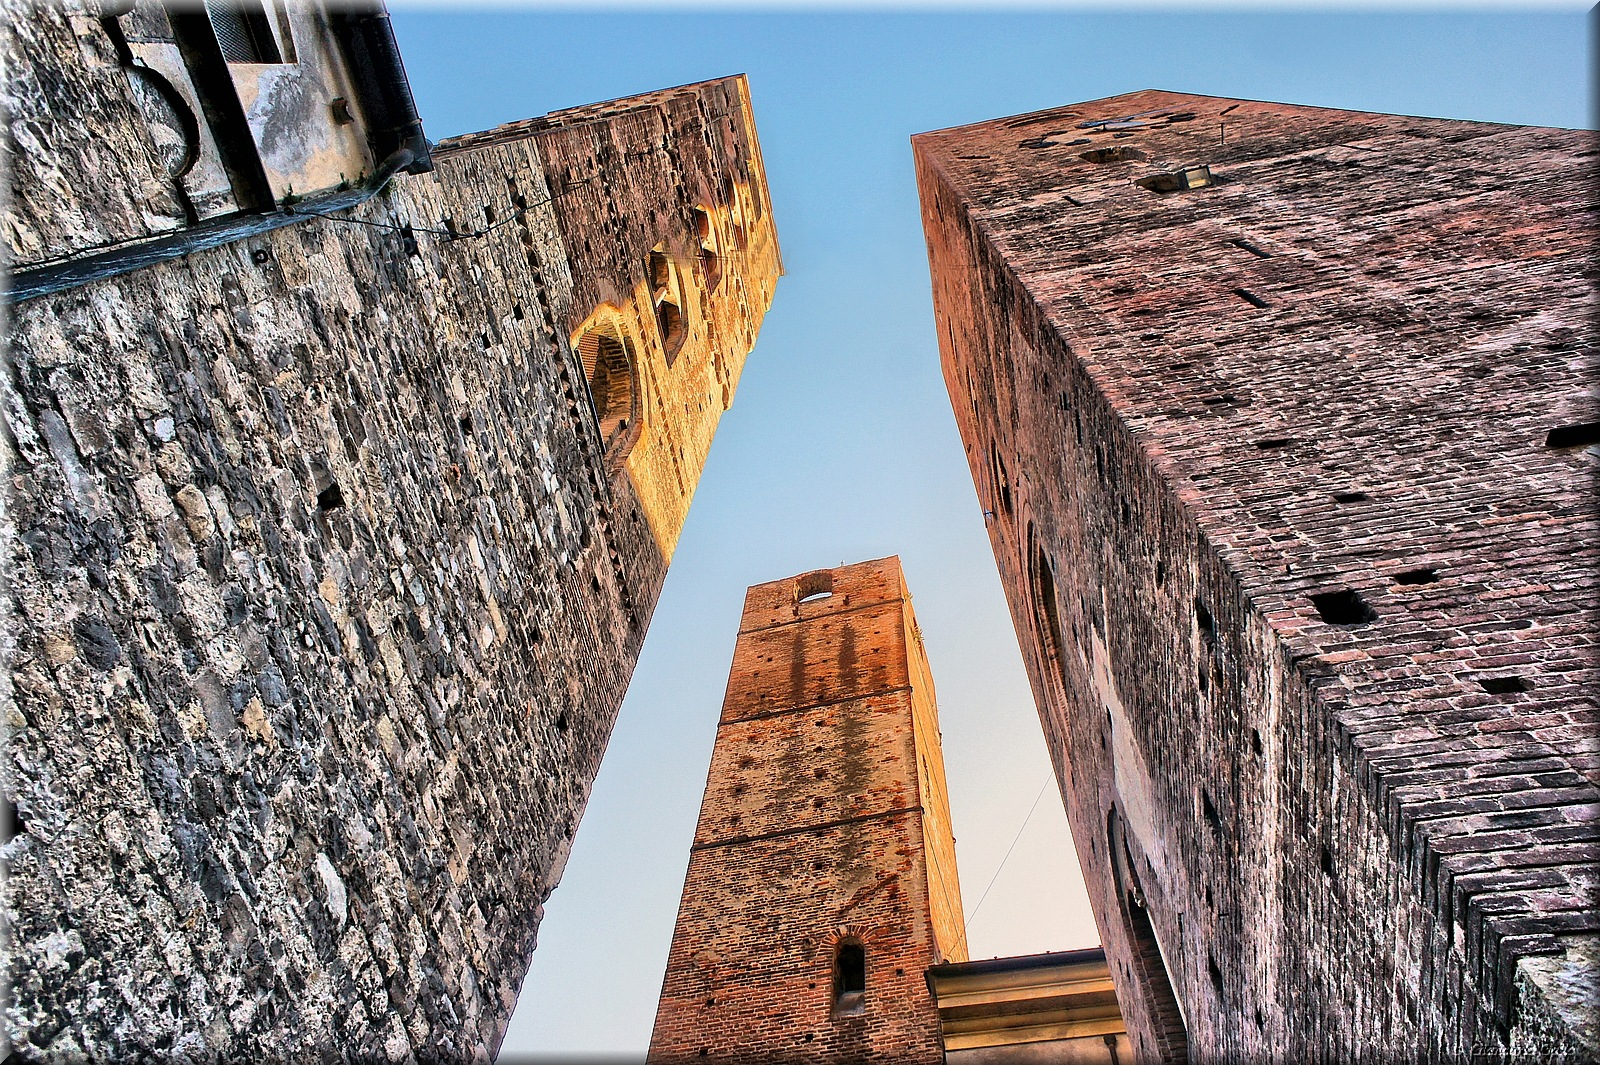 The towers by Giancarlo Gallo